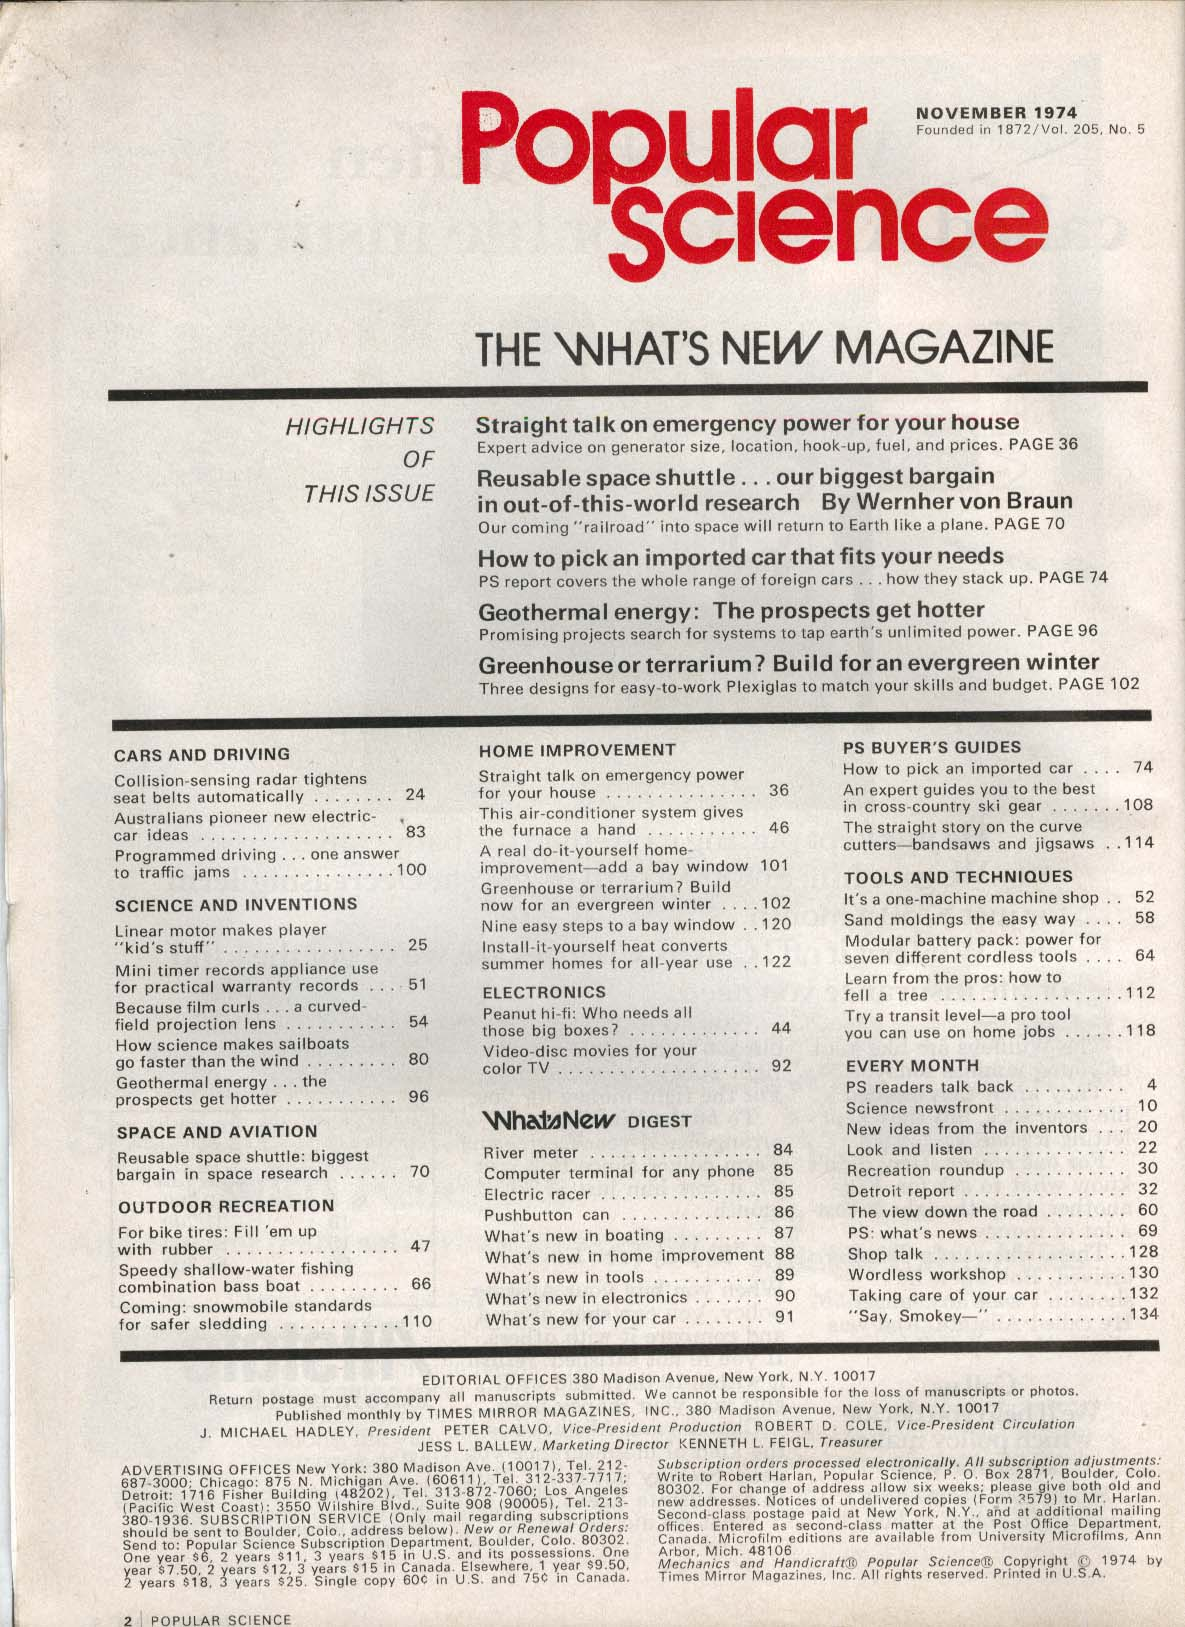 POPULAR SCIENCE Space Shuttle Geothermal Energy Imported Cars ++ 11 1974